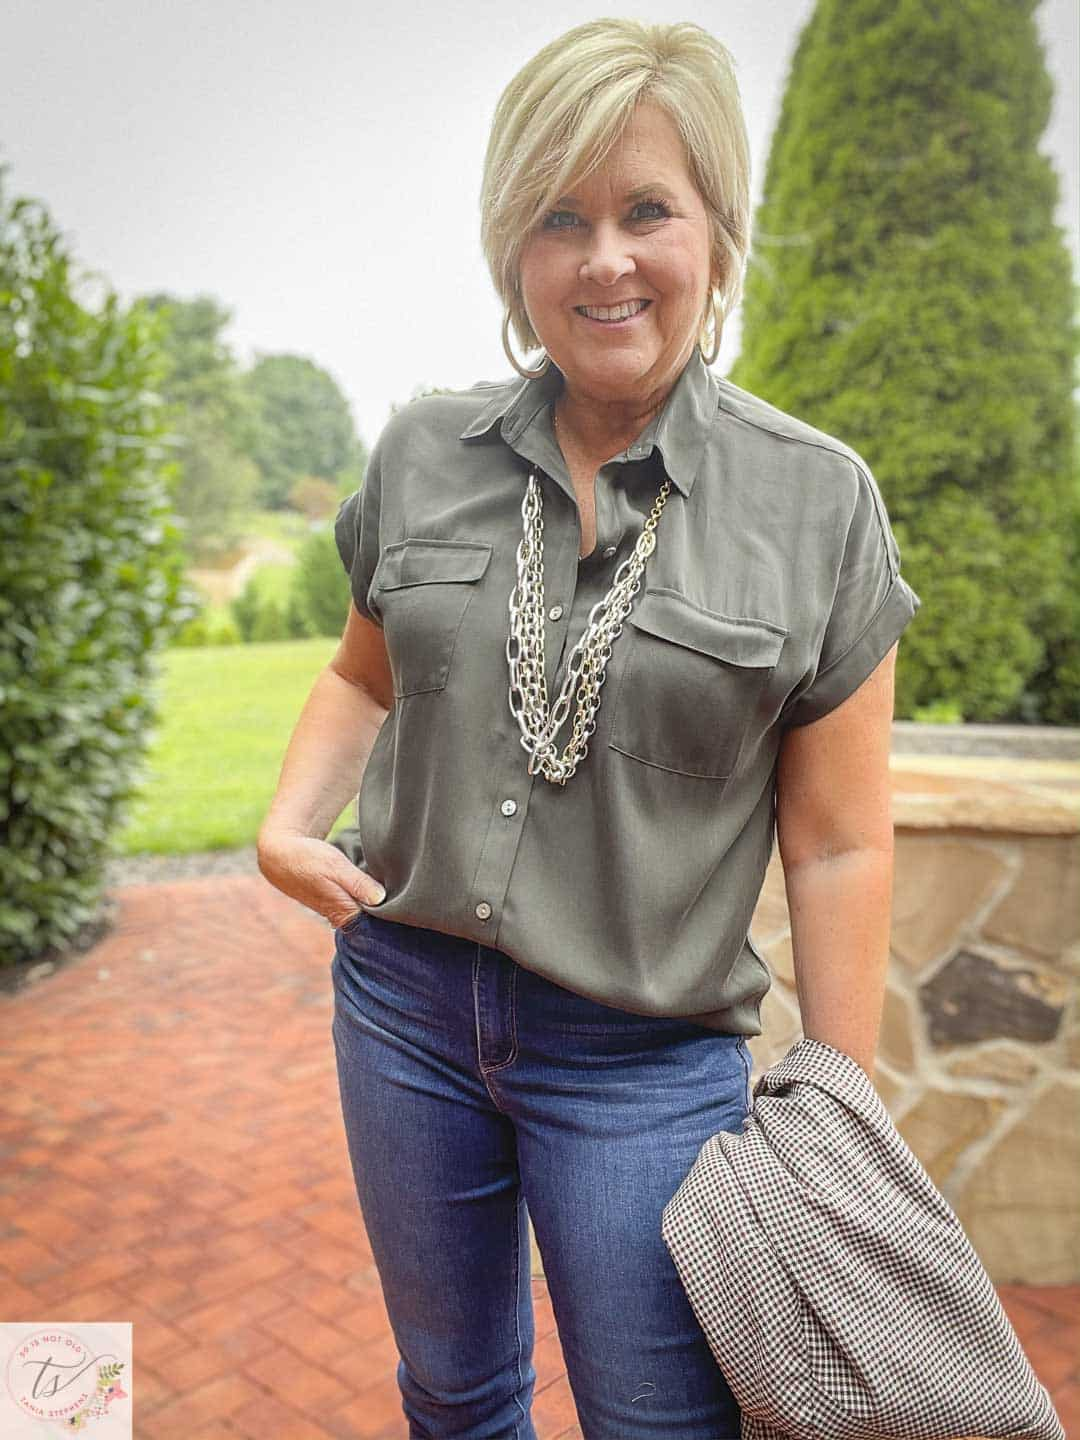 Over 40 Fashion Blogger, Tania Stephens, is wearing an olive button-up shirt, bootcut jeans, and gold jewelry